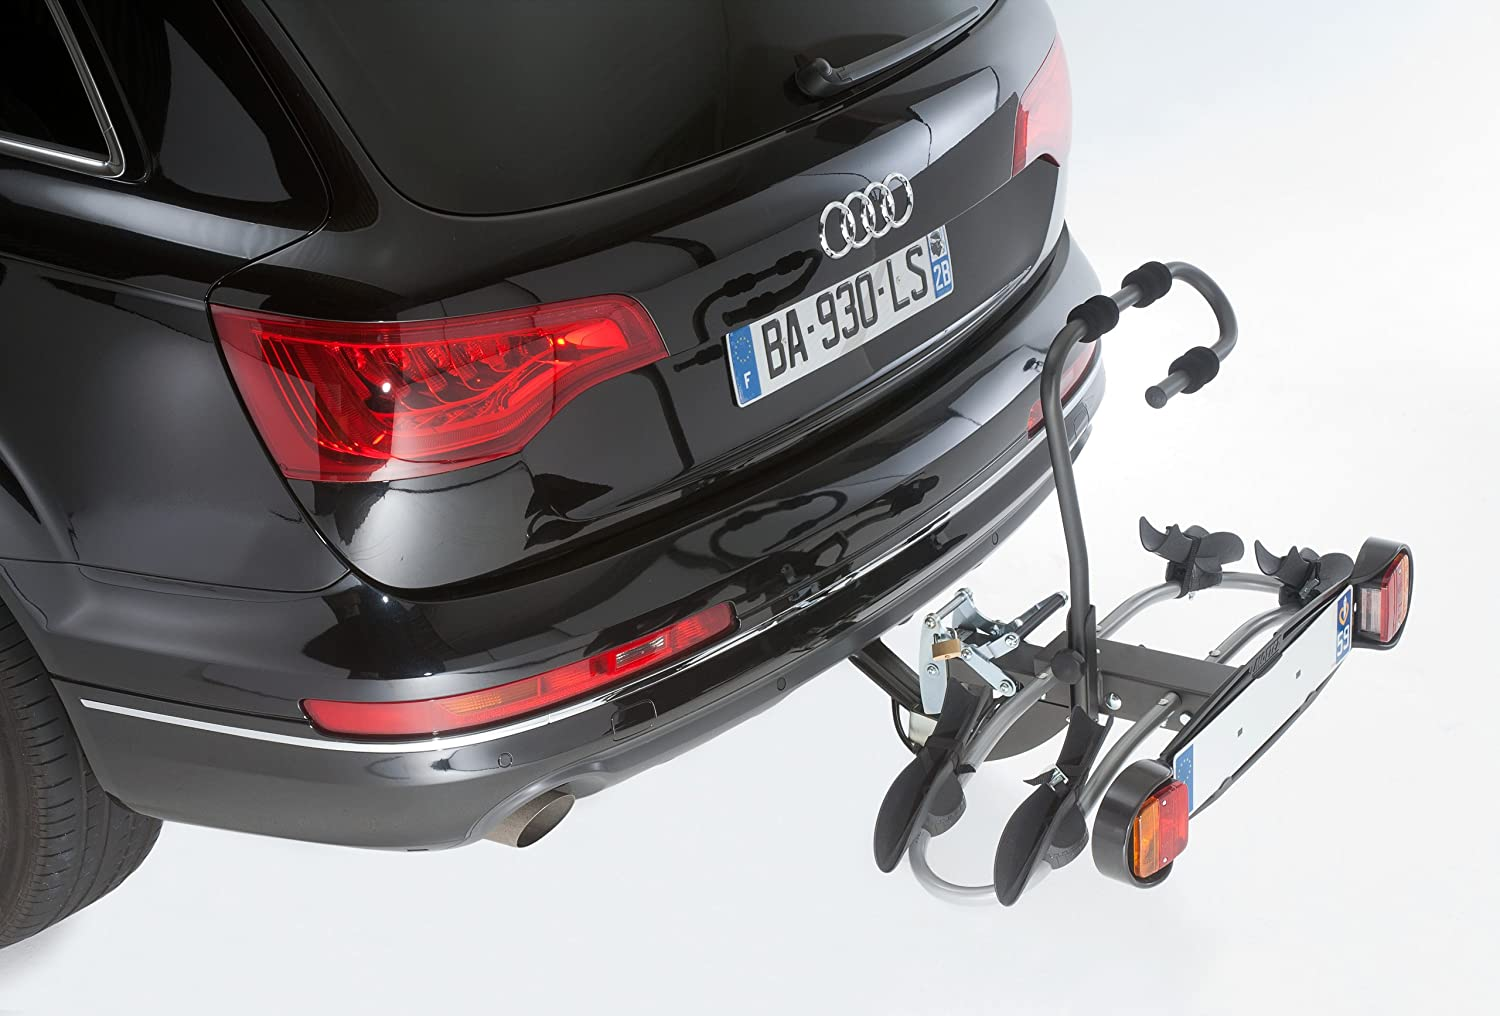 /Premium Platform Mottez A018P2RA Bicycle Carrier for 2/Bicycles Towing Hitch/